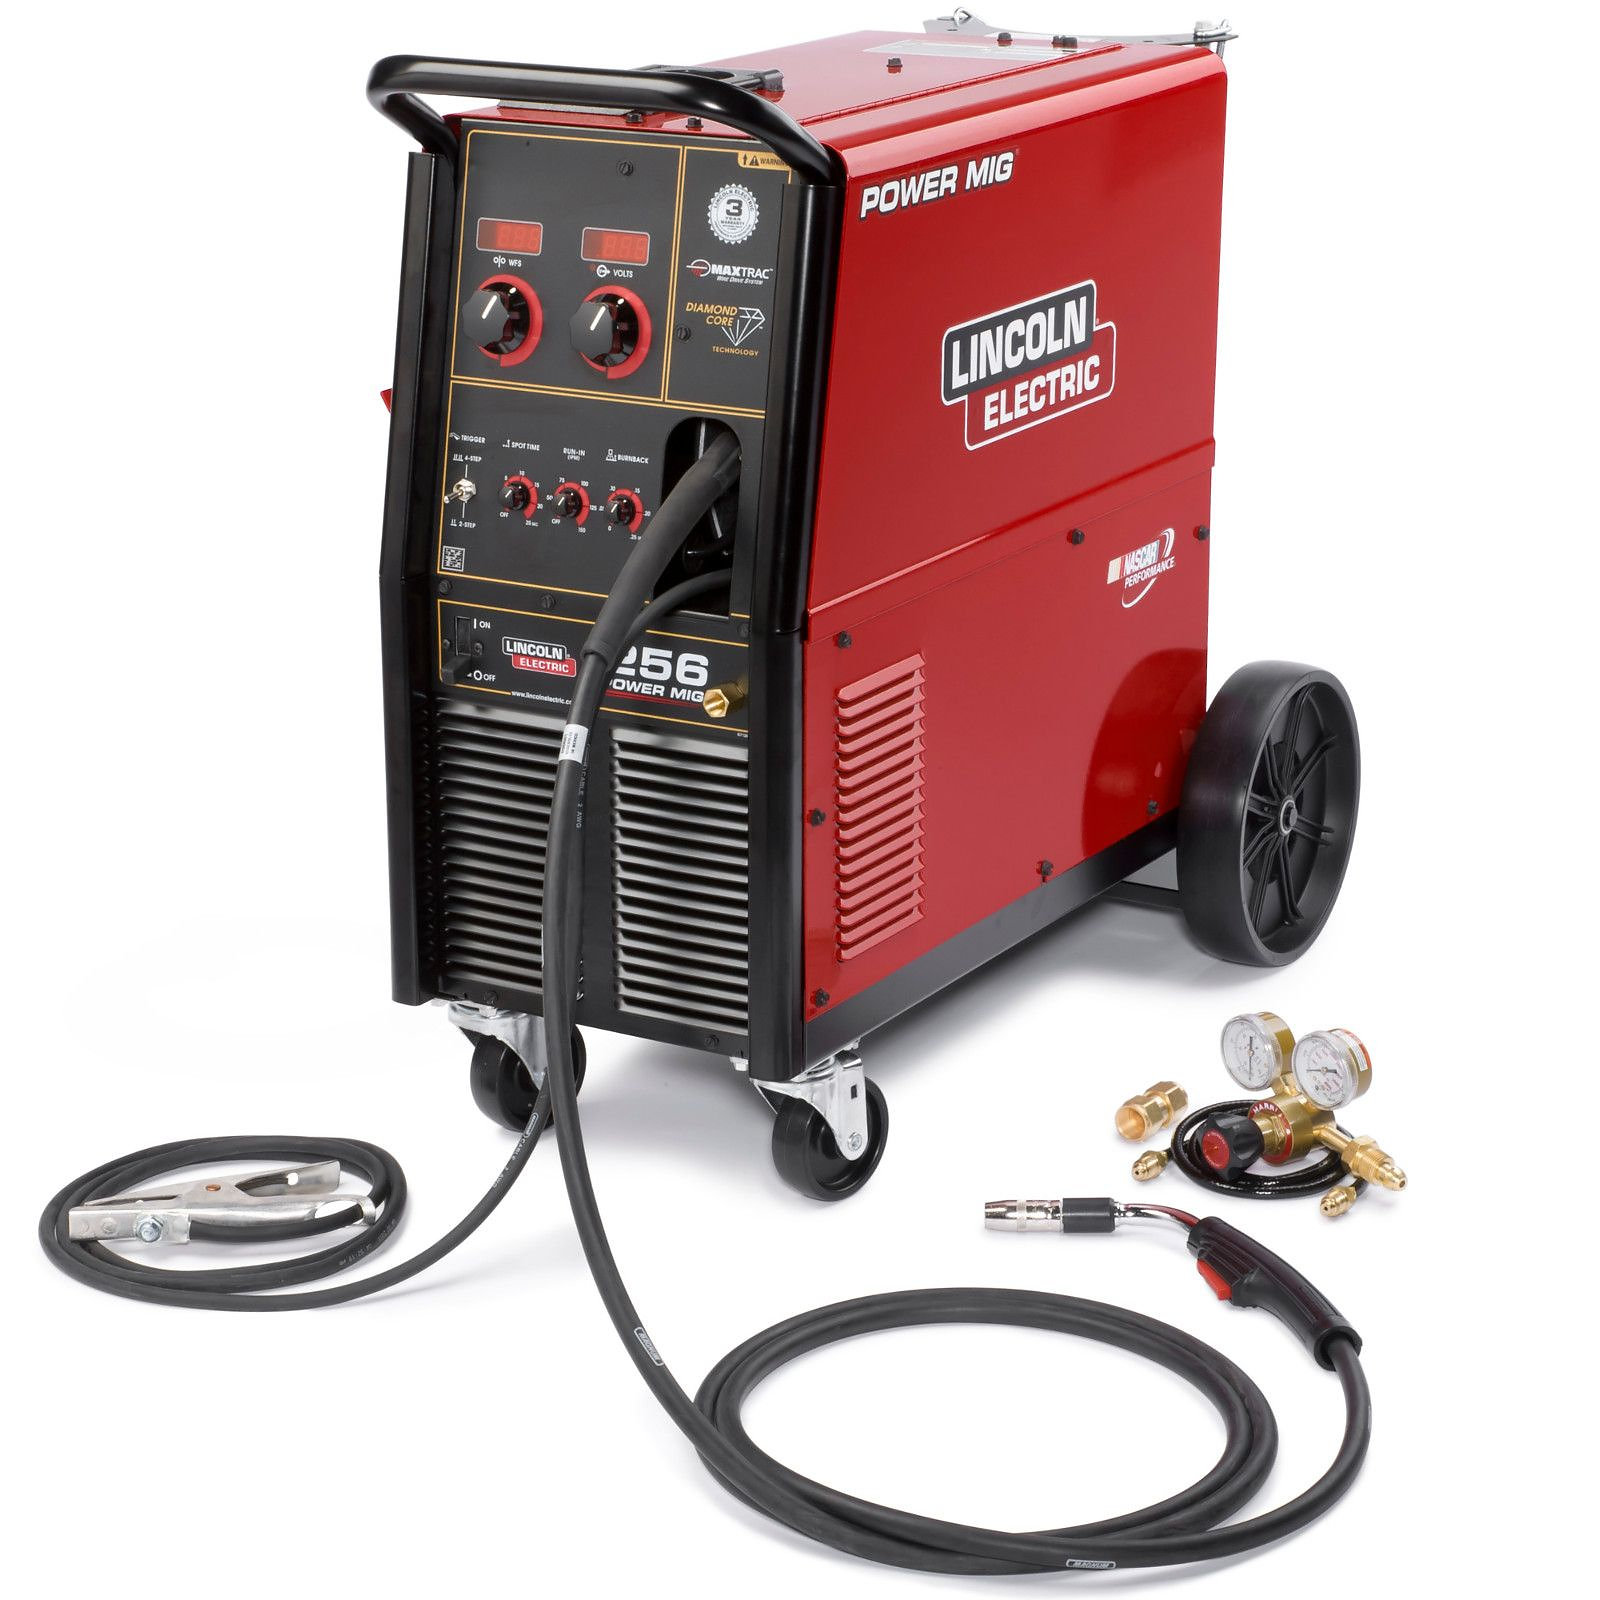 mig cutter plasma image powertec product lincoln seperate amps welder roll phase